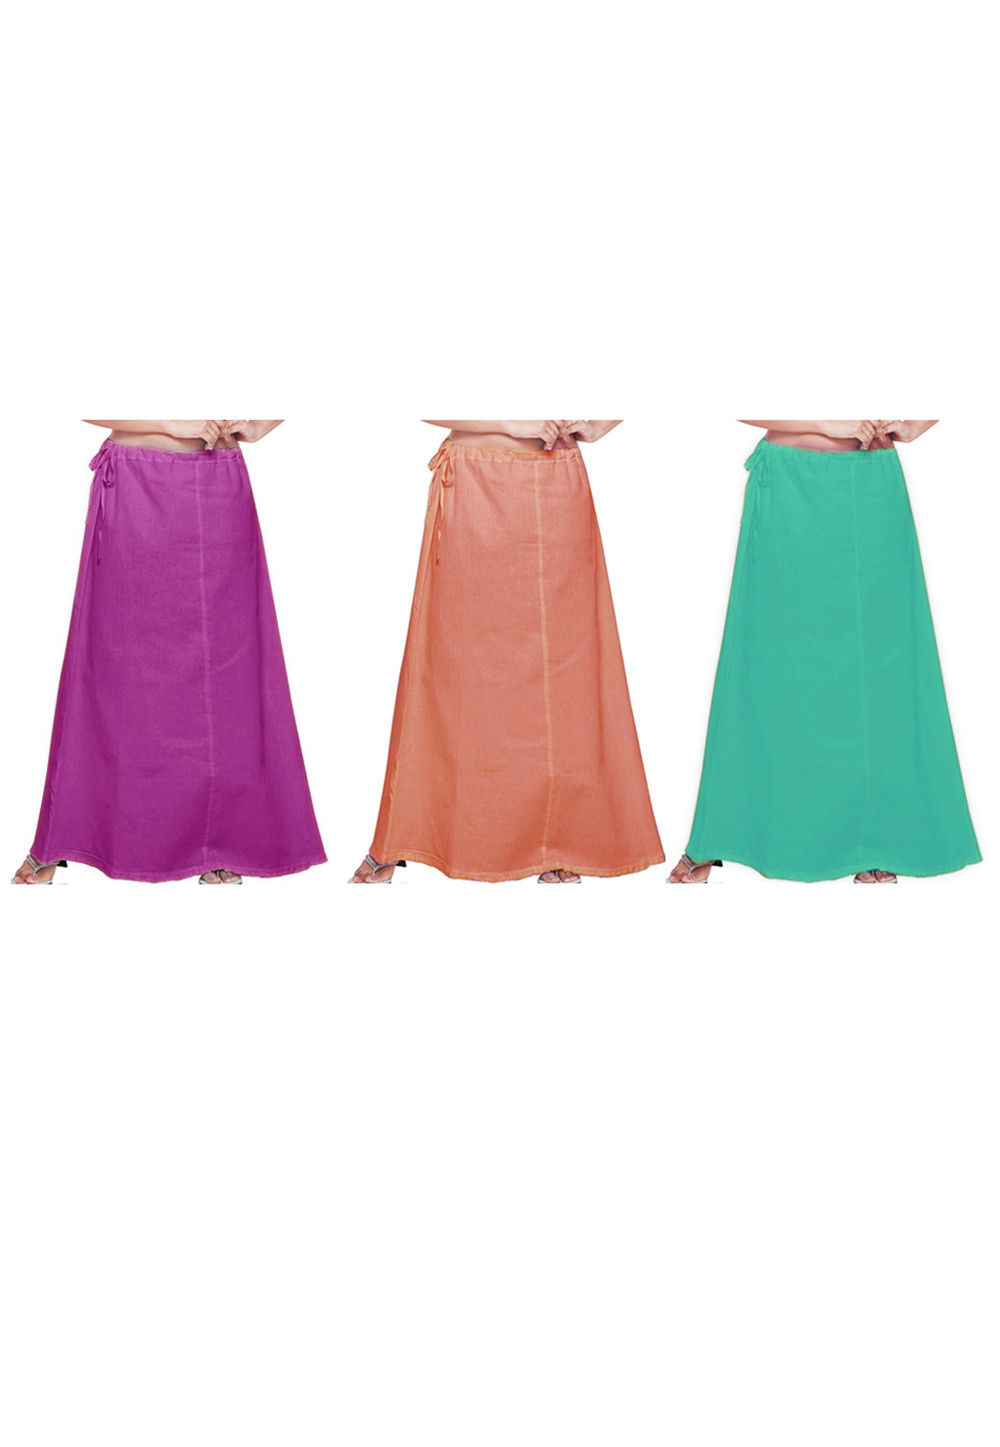 Combo Set Cotton Petticoat in Magenta, Peach and Green